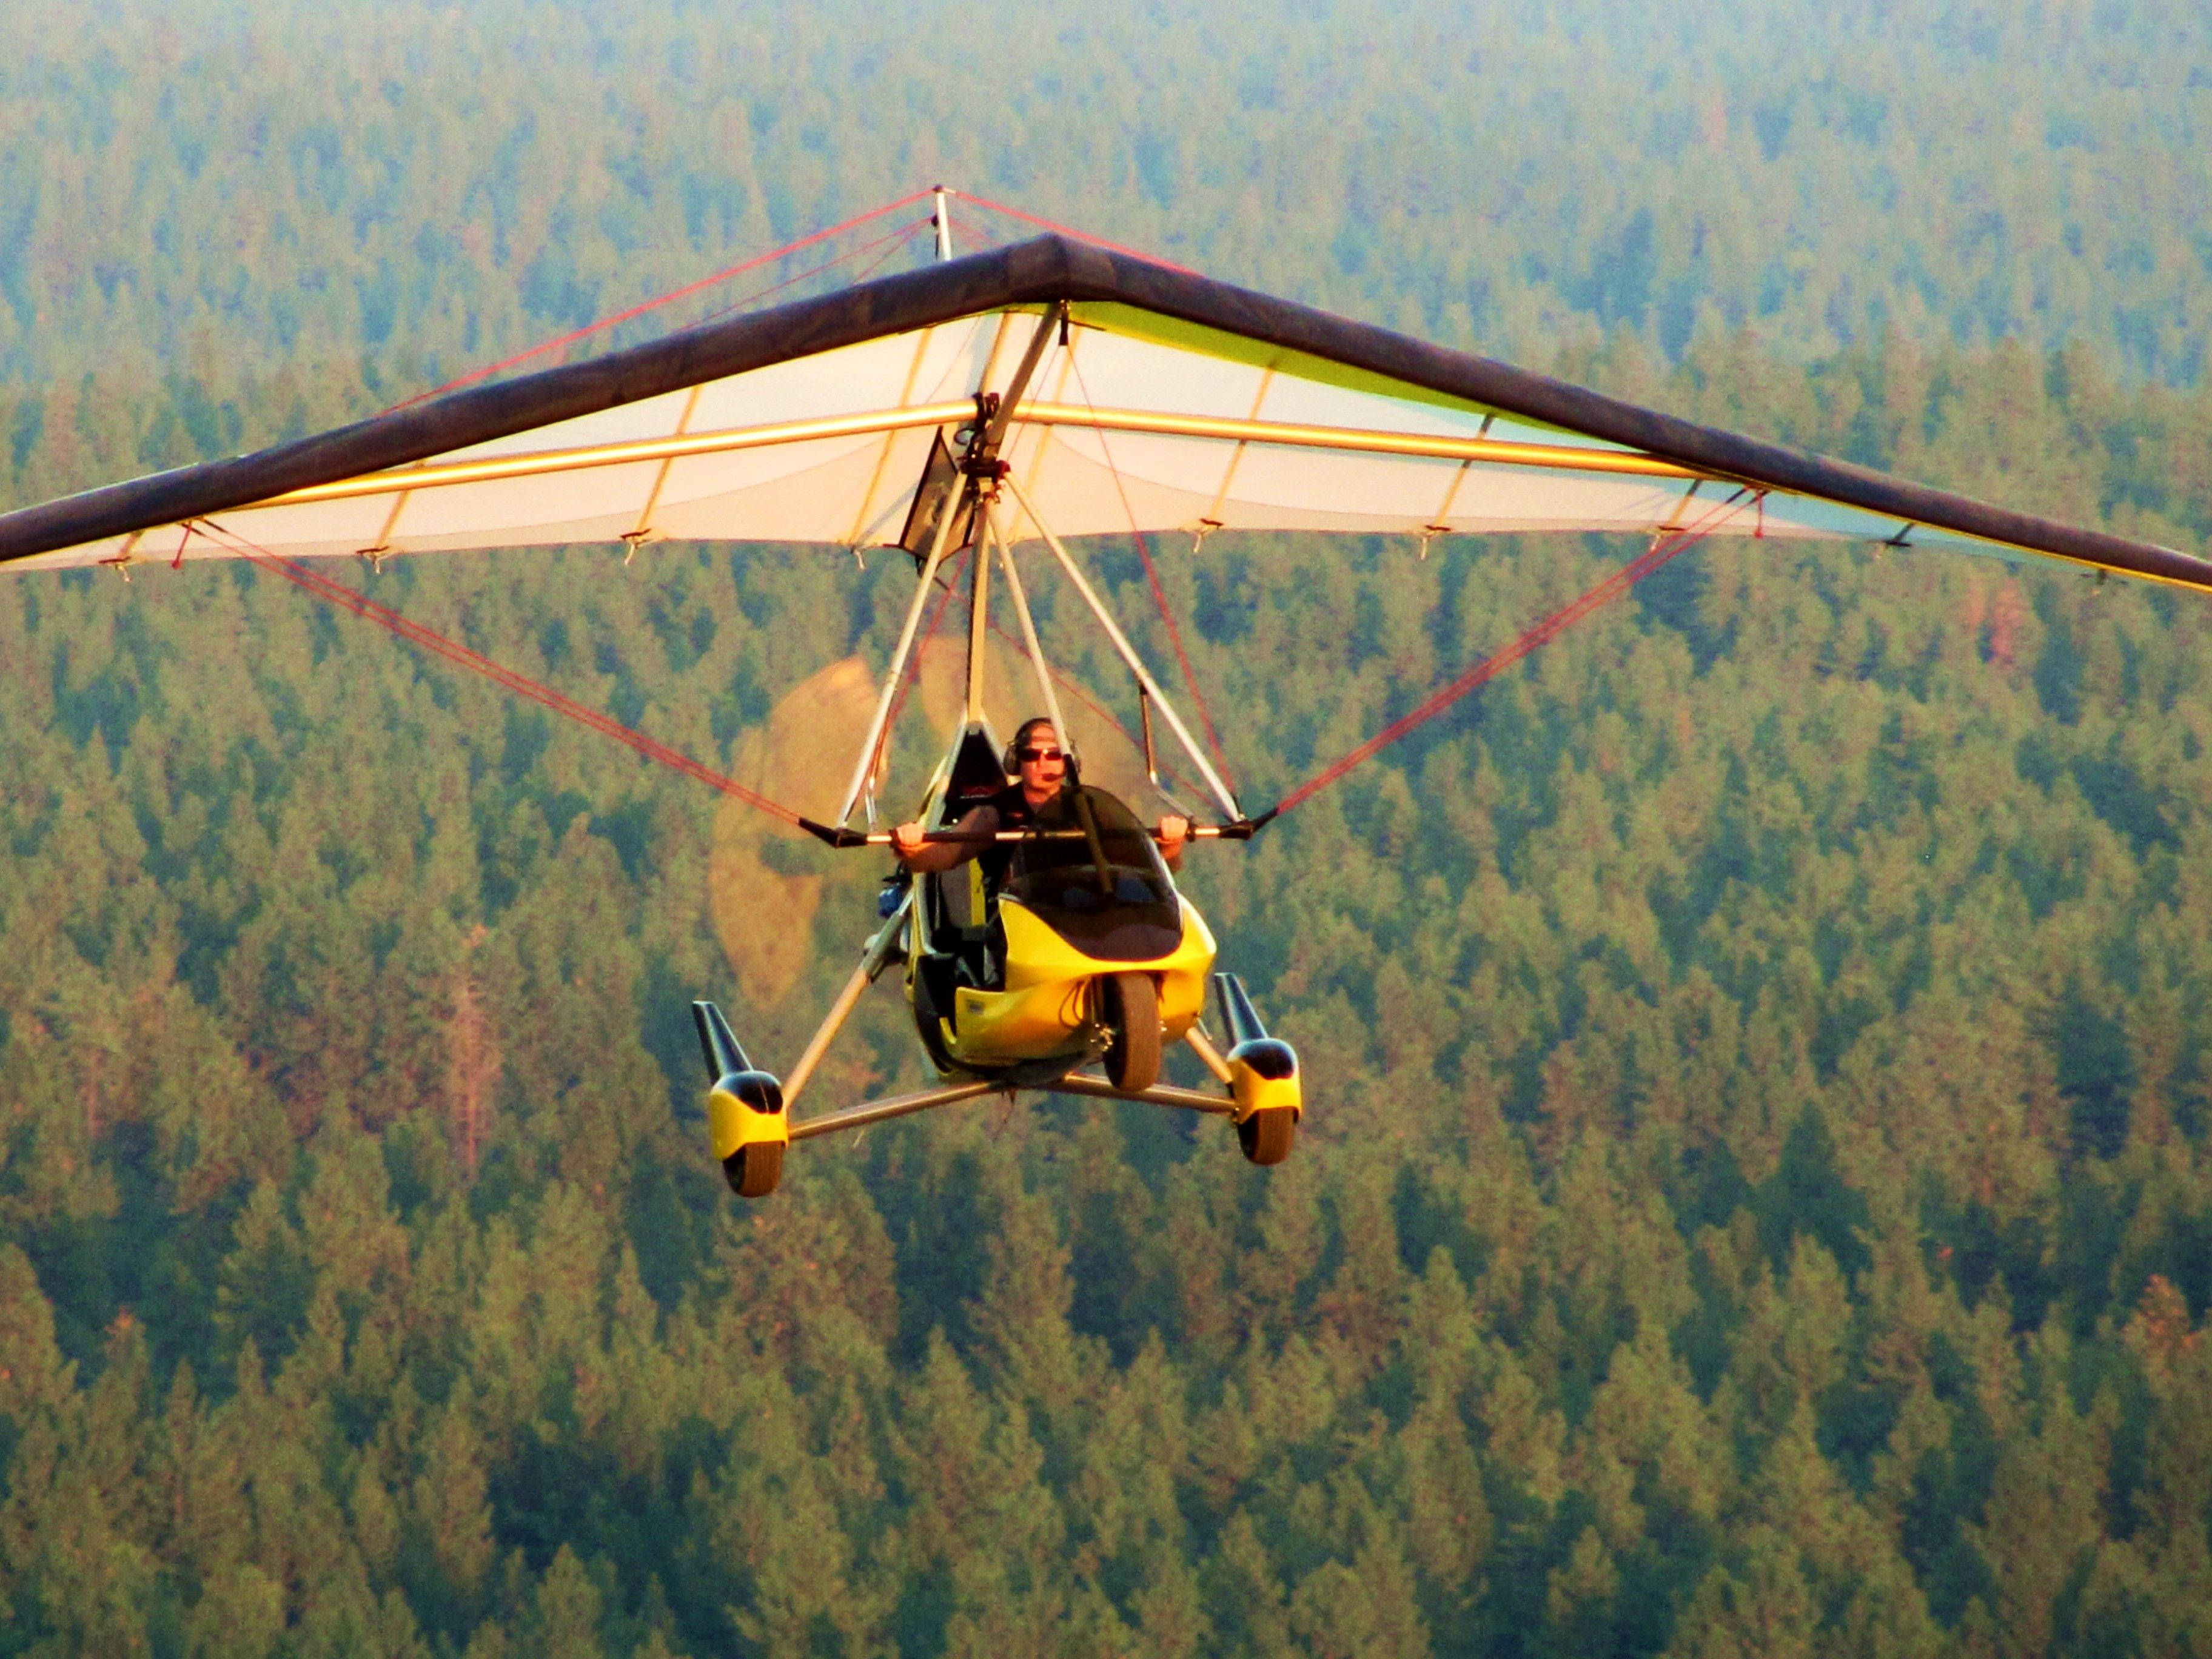 Pin by All About Trikes on Experience Trike Flying! | Ultralight